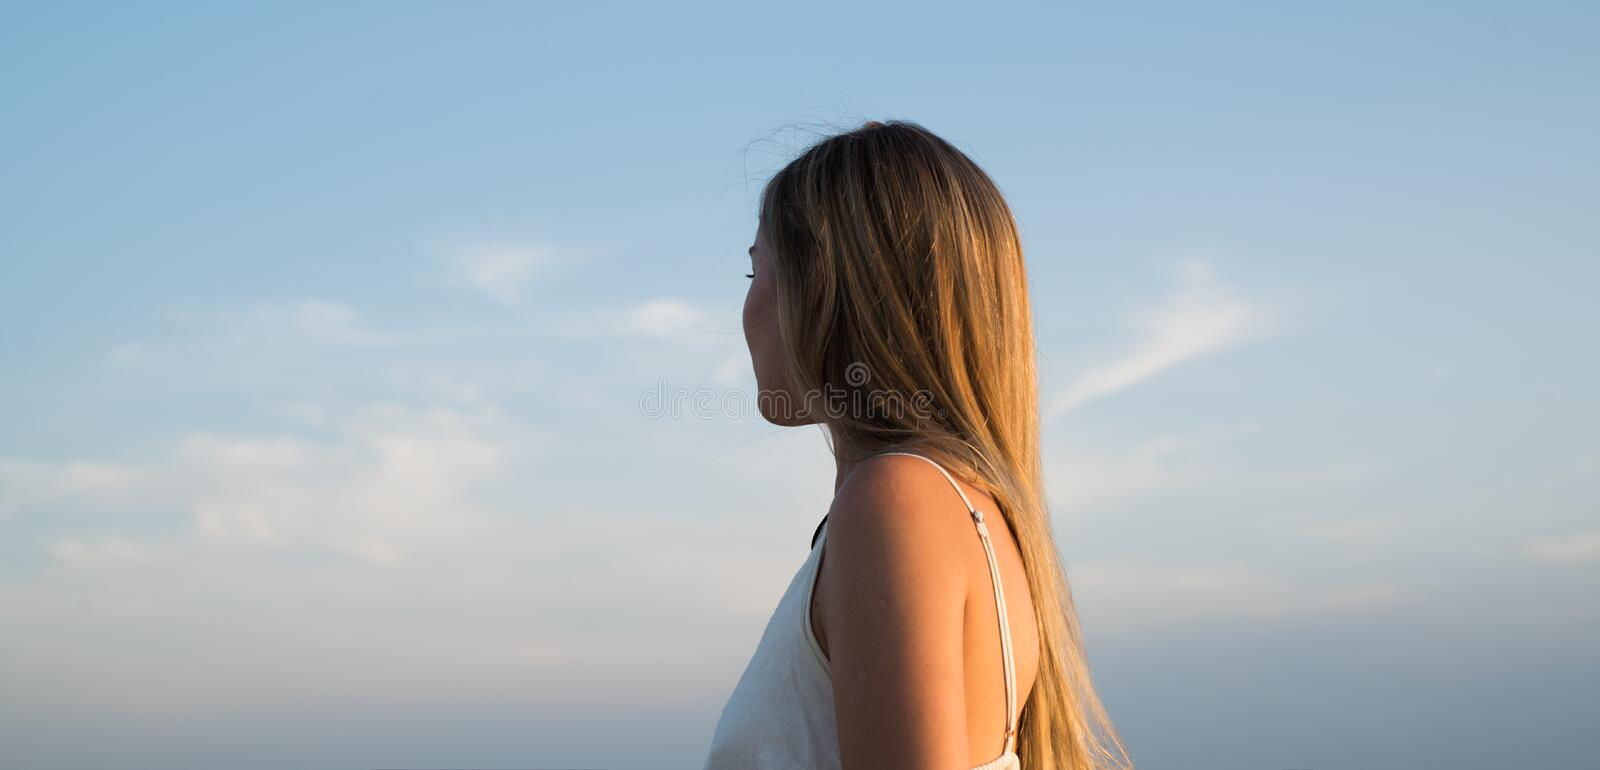 Woman looking far away. dreaming about better times. success. future life. traveling concept. girl on sunset sky royalty free stock photography